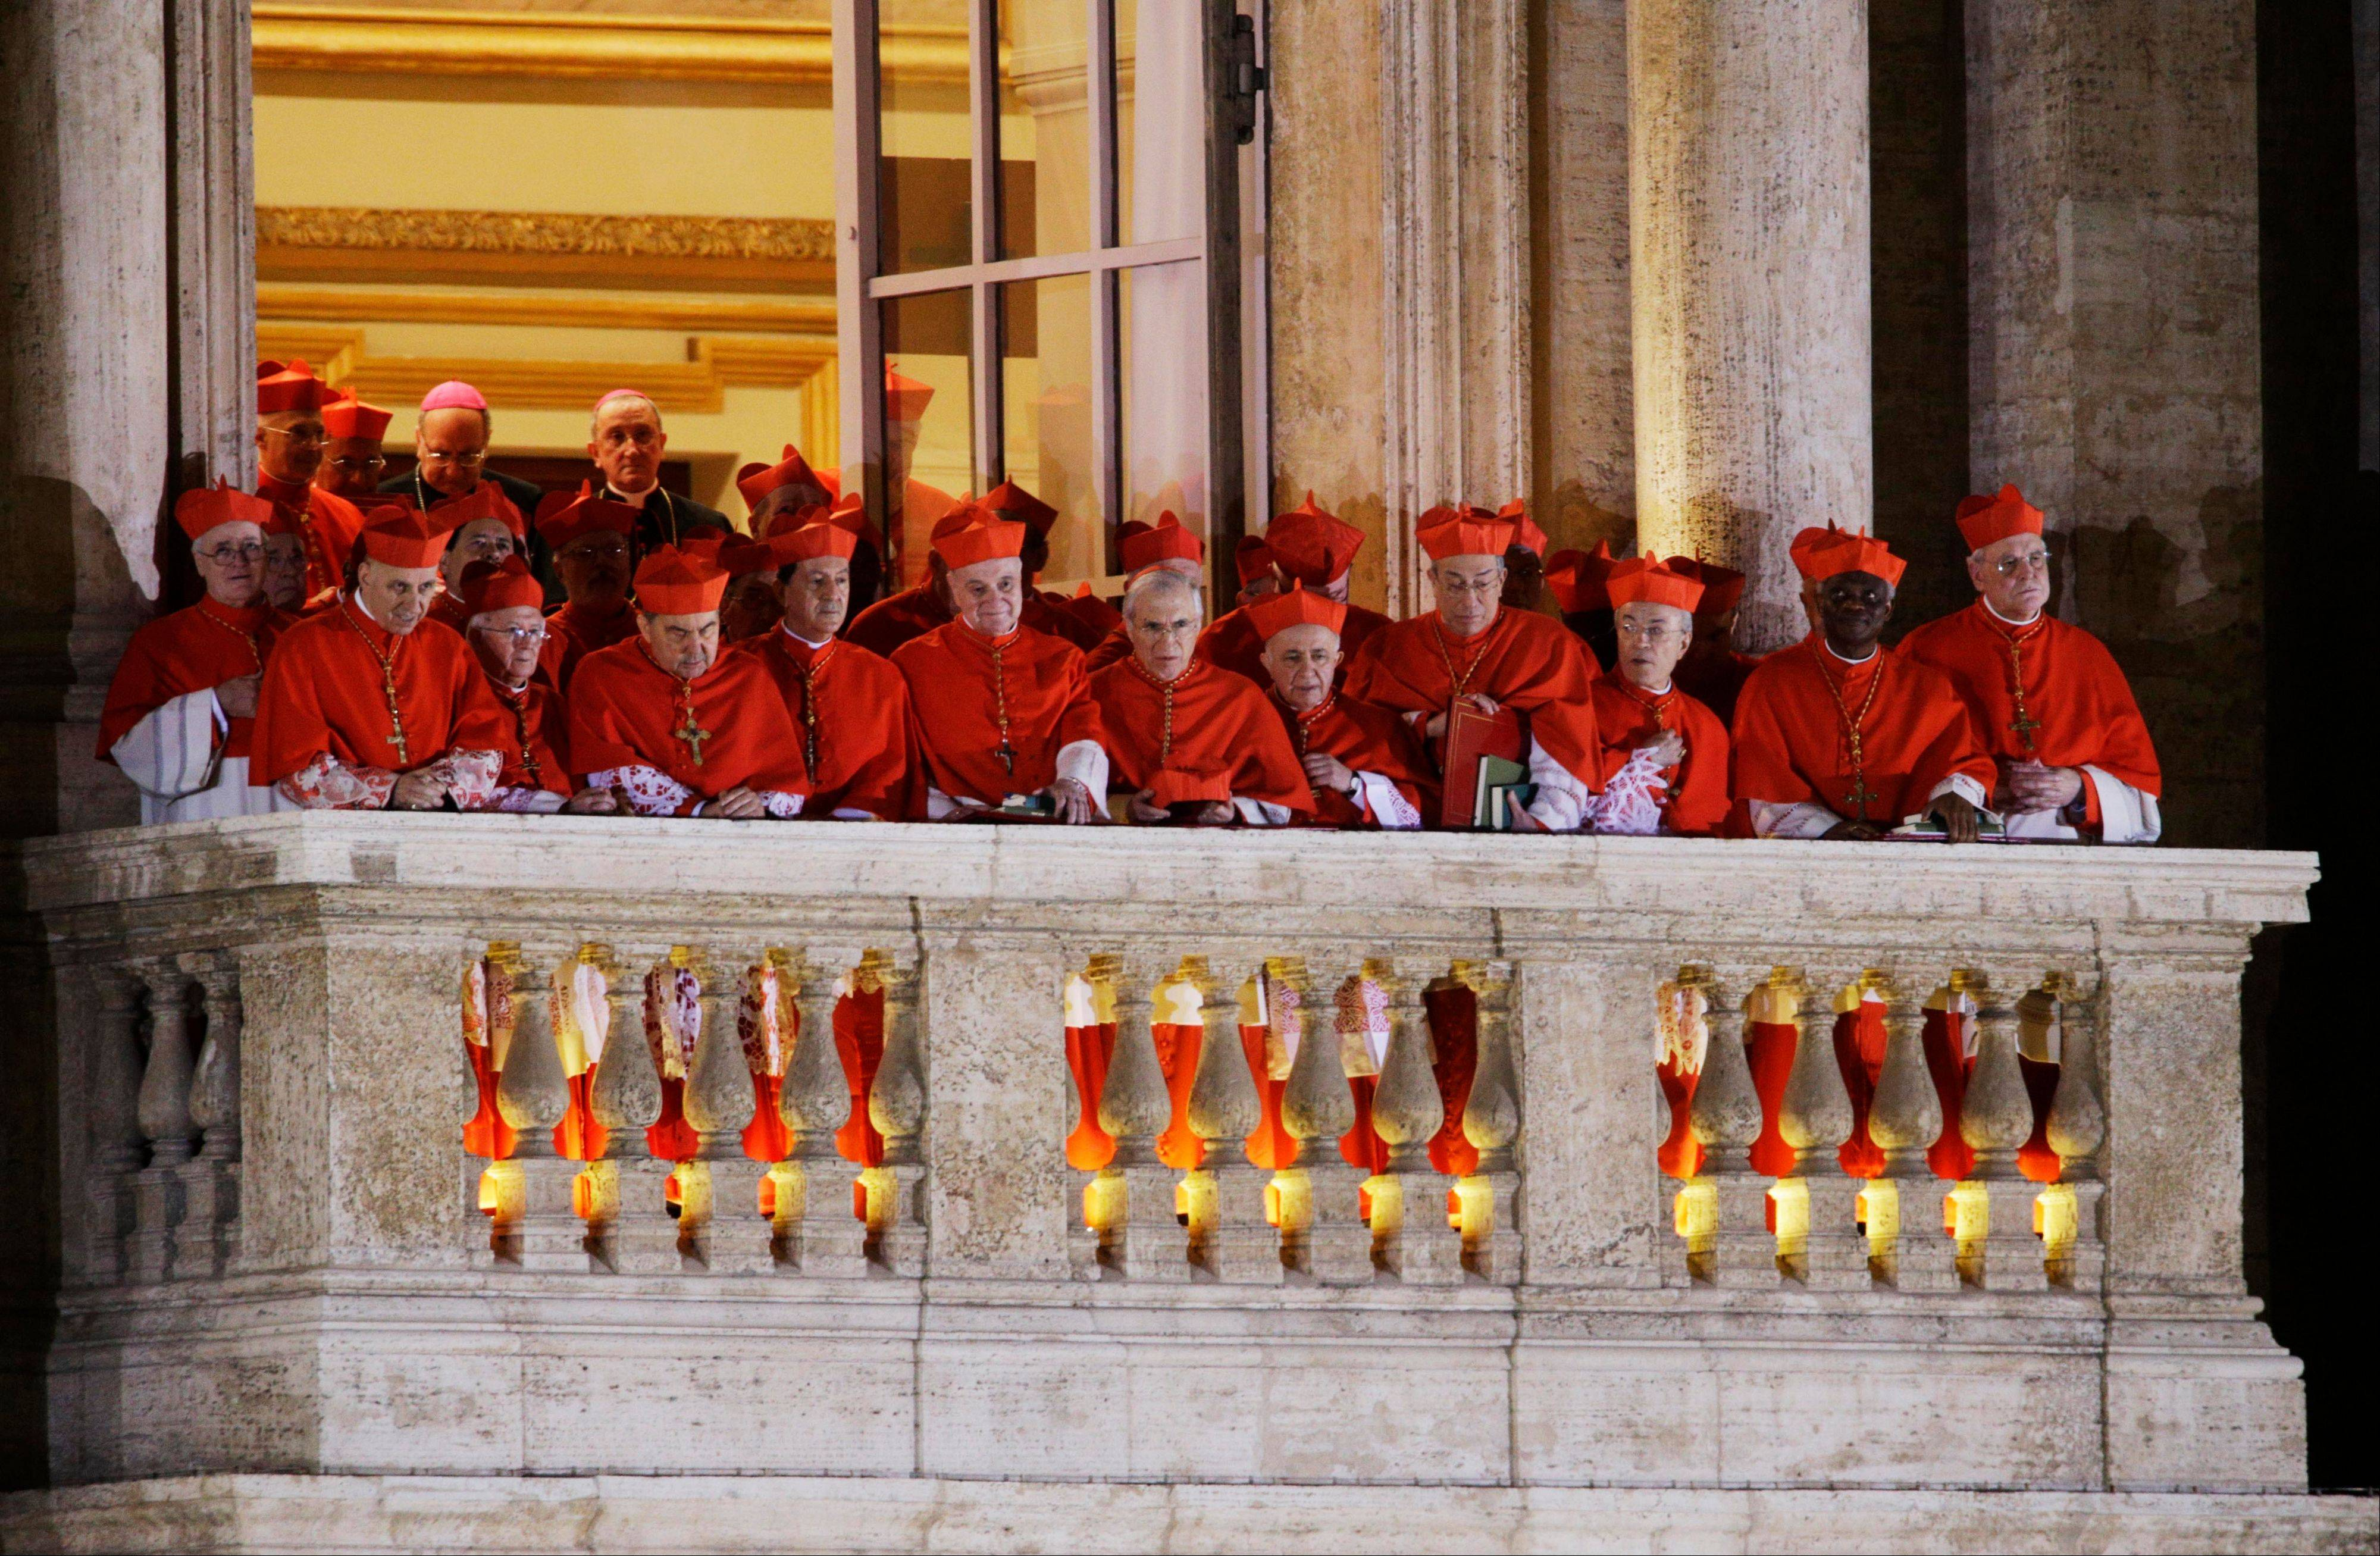 Cardinals watch as Pope Francis speaks to the crowd from the central balcony of St. Peter's Basilica at the Vatican, Wednesday, March 13, 2013. Cardinal Jorge Bergoglio, who chose the name of Francis, is the 266th pontiff of the Roman Catholic Church.